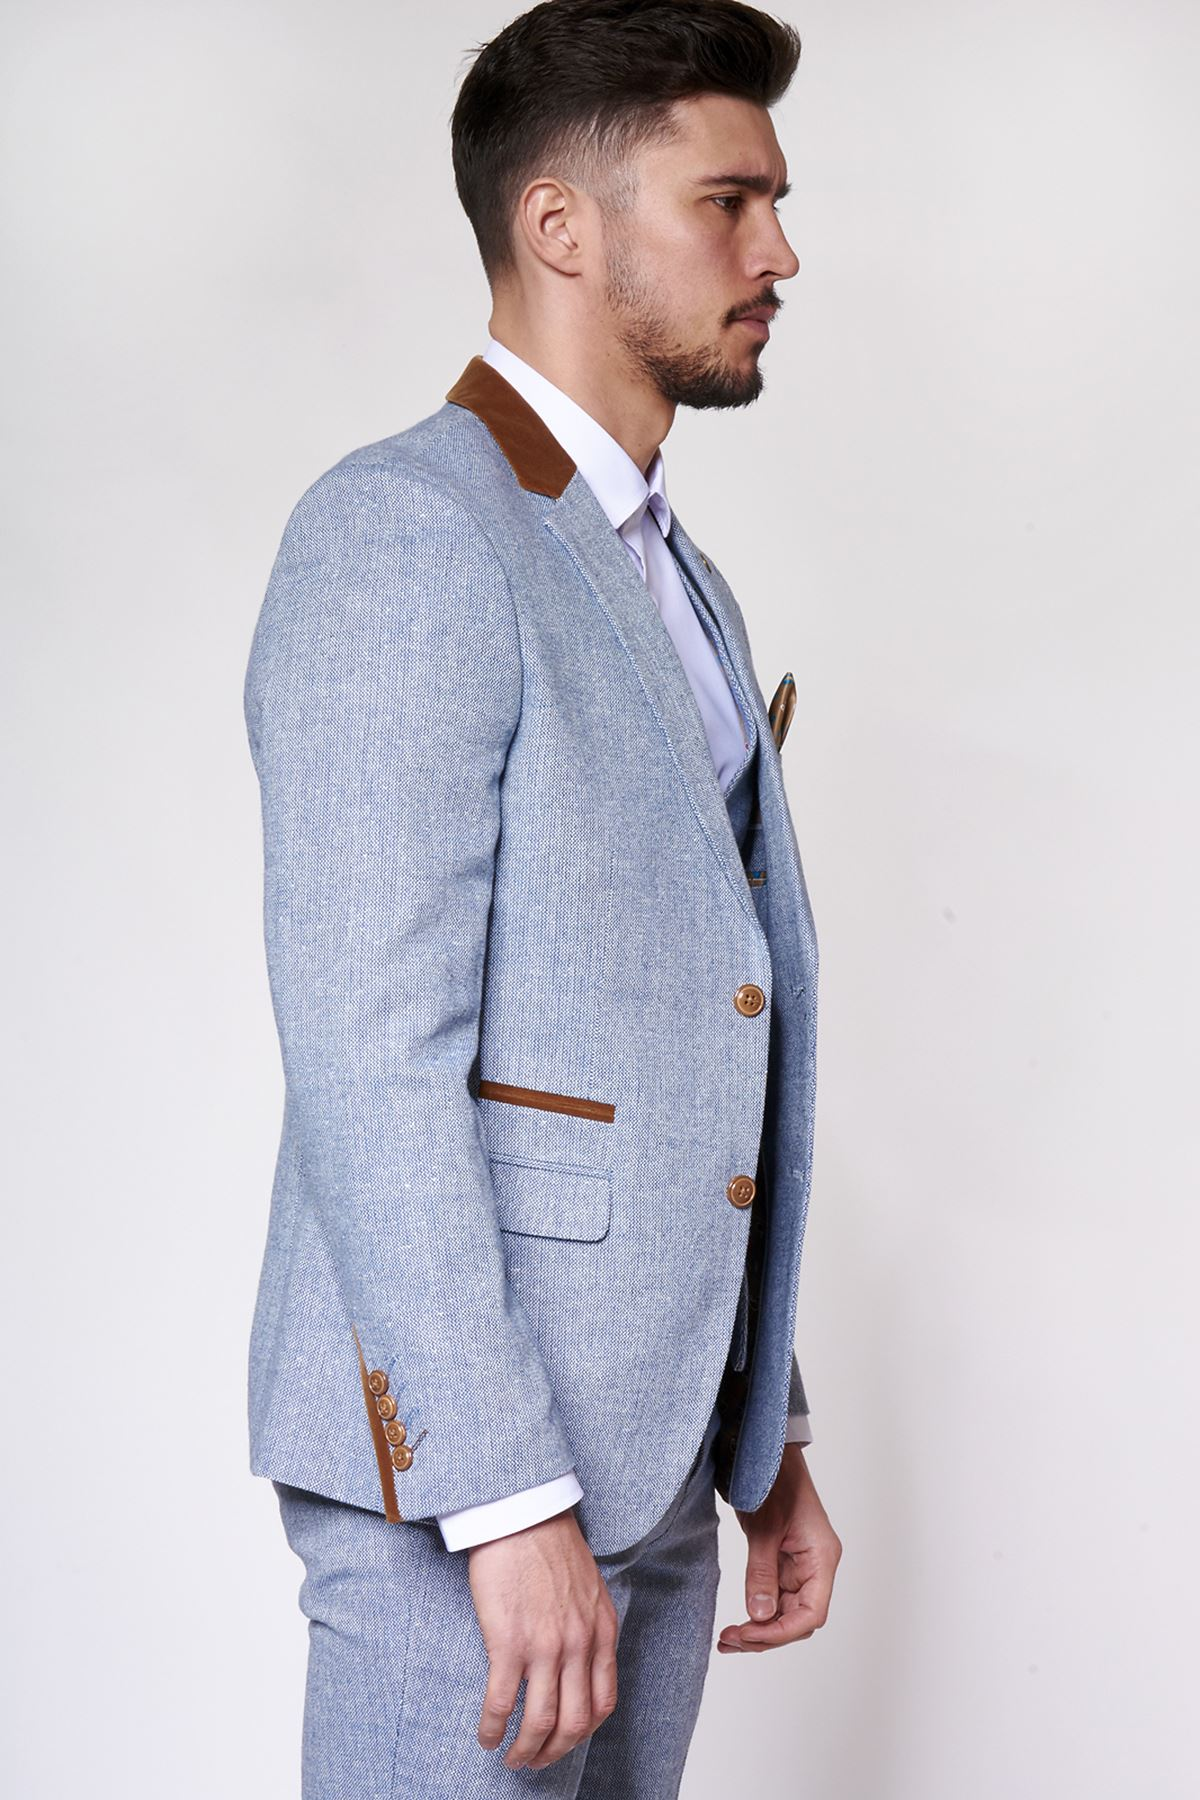 Tweed Blazers. Tweed is a classic and sophisticated fabric and a tweed blazer is a great option to achieve that smart casual look. Our selection of men's tweed jackets have been carefully crafted to give you that tailored feel and are so versatile they are the perfect choice for any occasion.